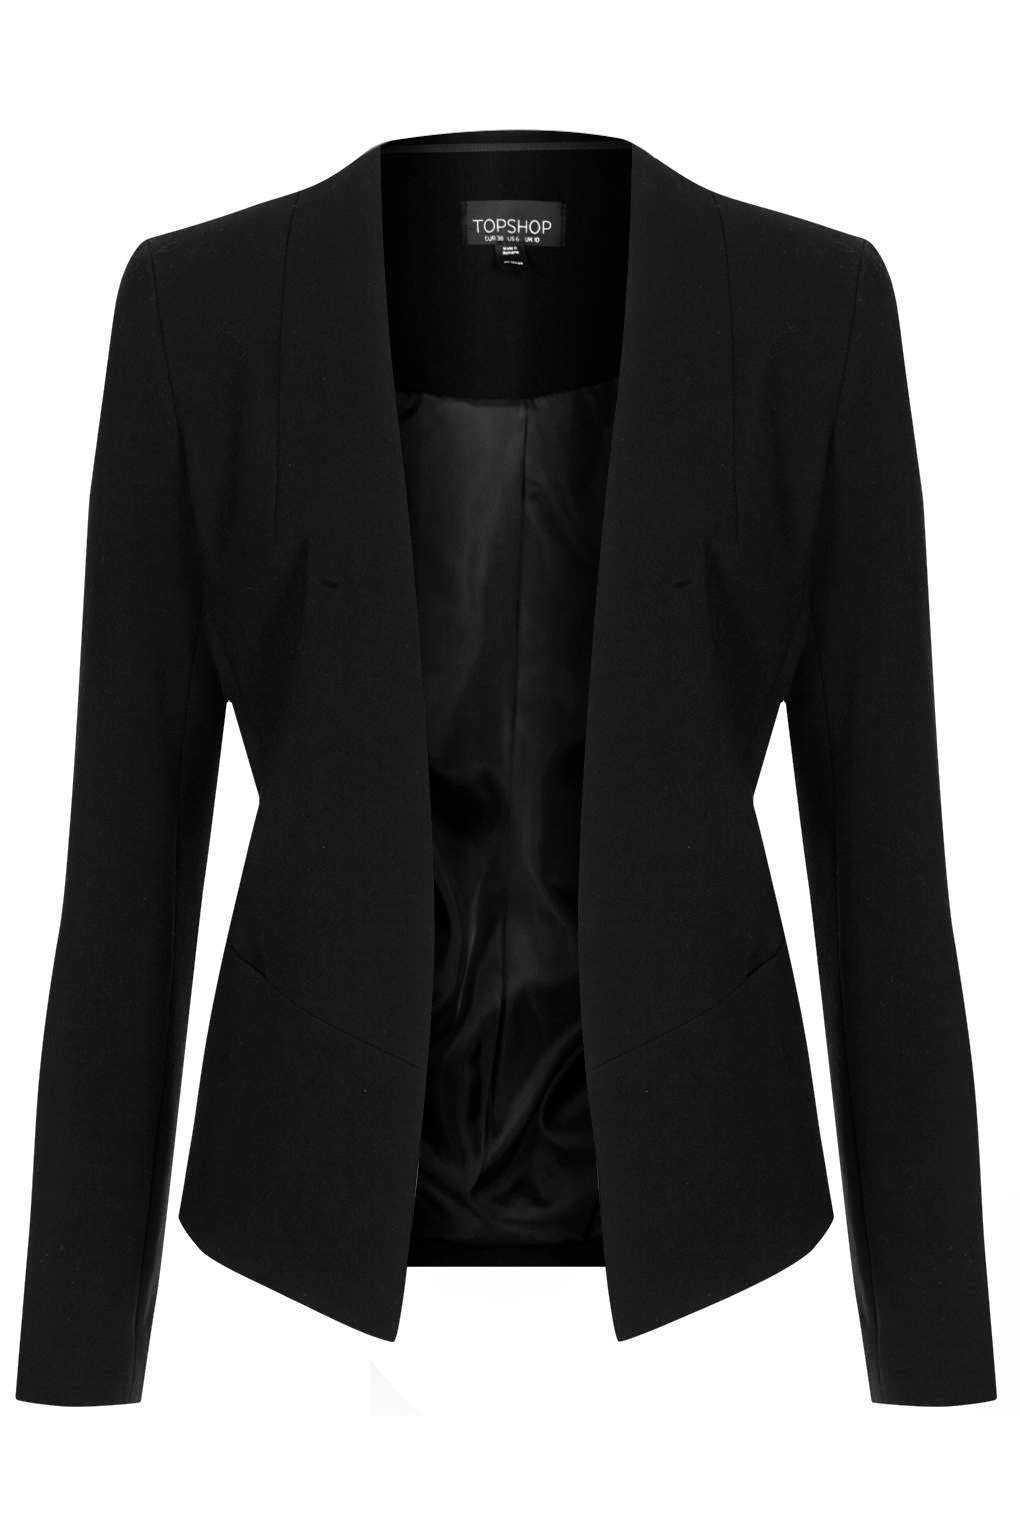 fitted black blazer